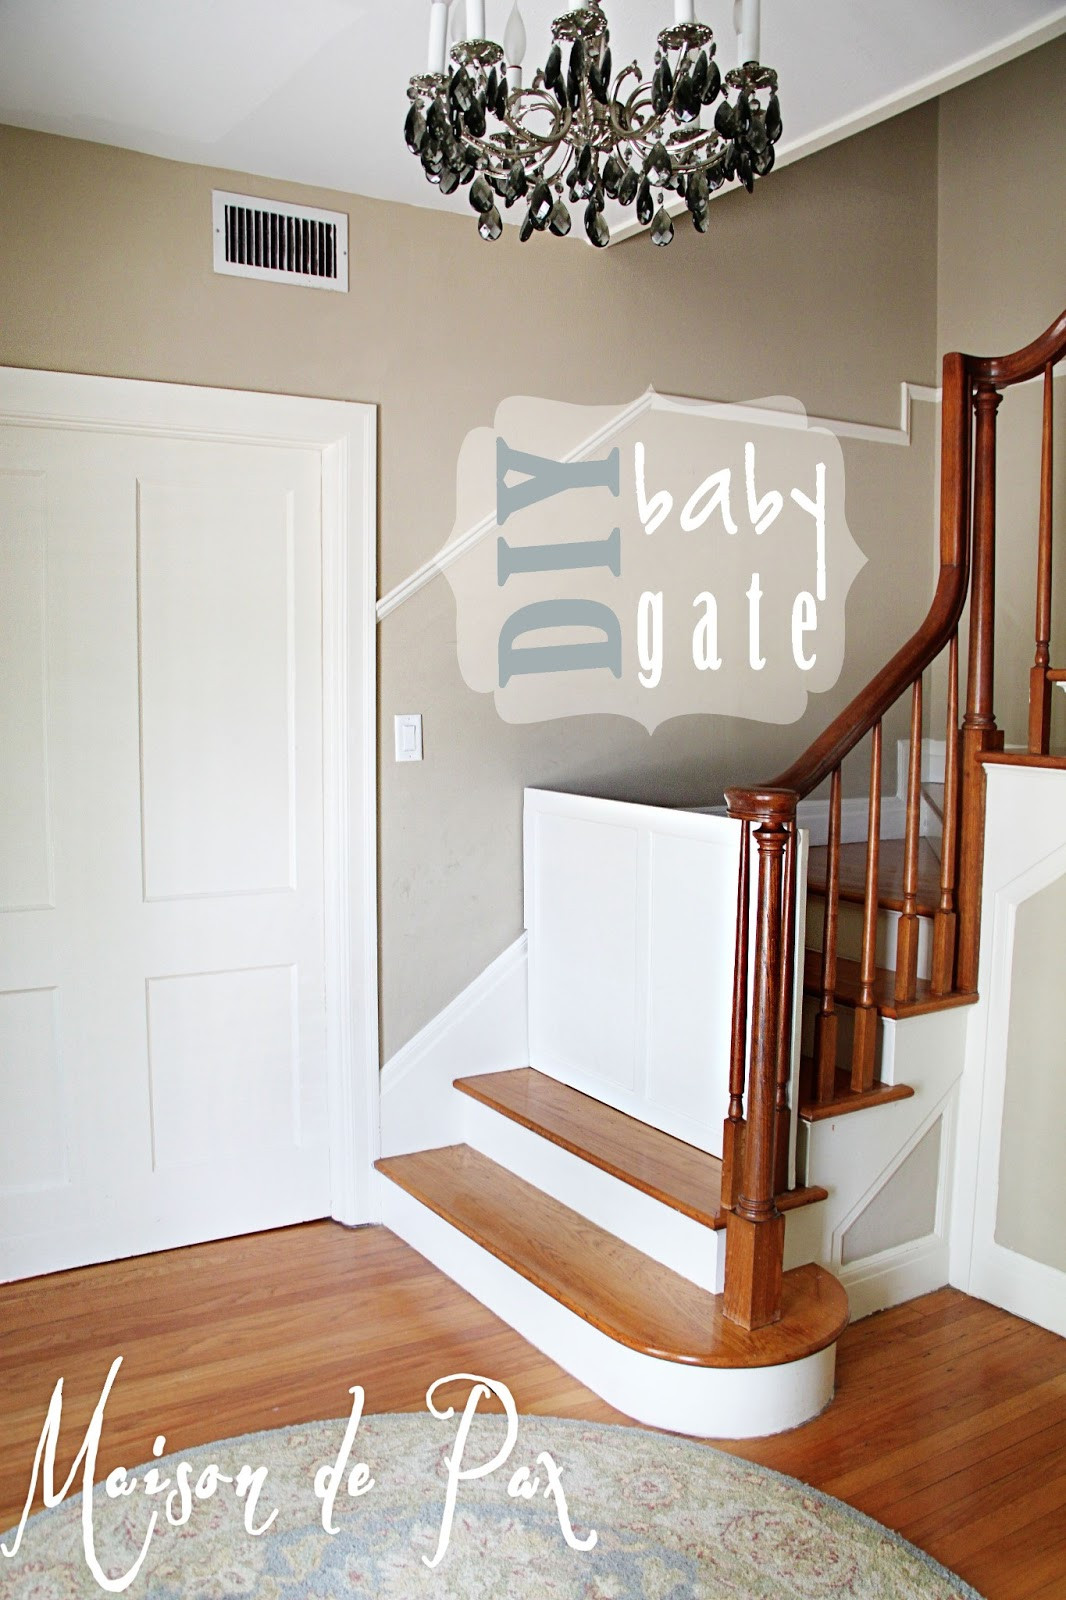 Best ideas about DIY Baby Gates . Save or Pin DIY Classy Baby Gate Maison de Pax Now.